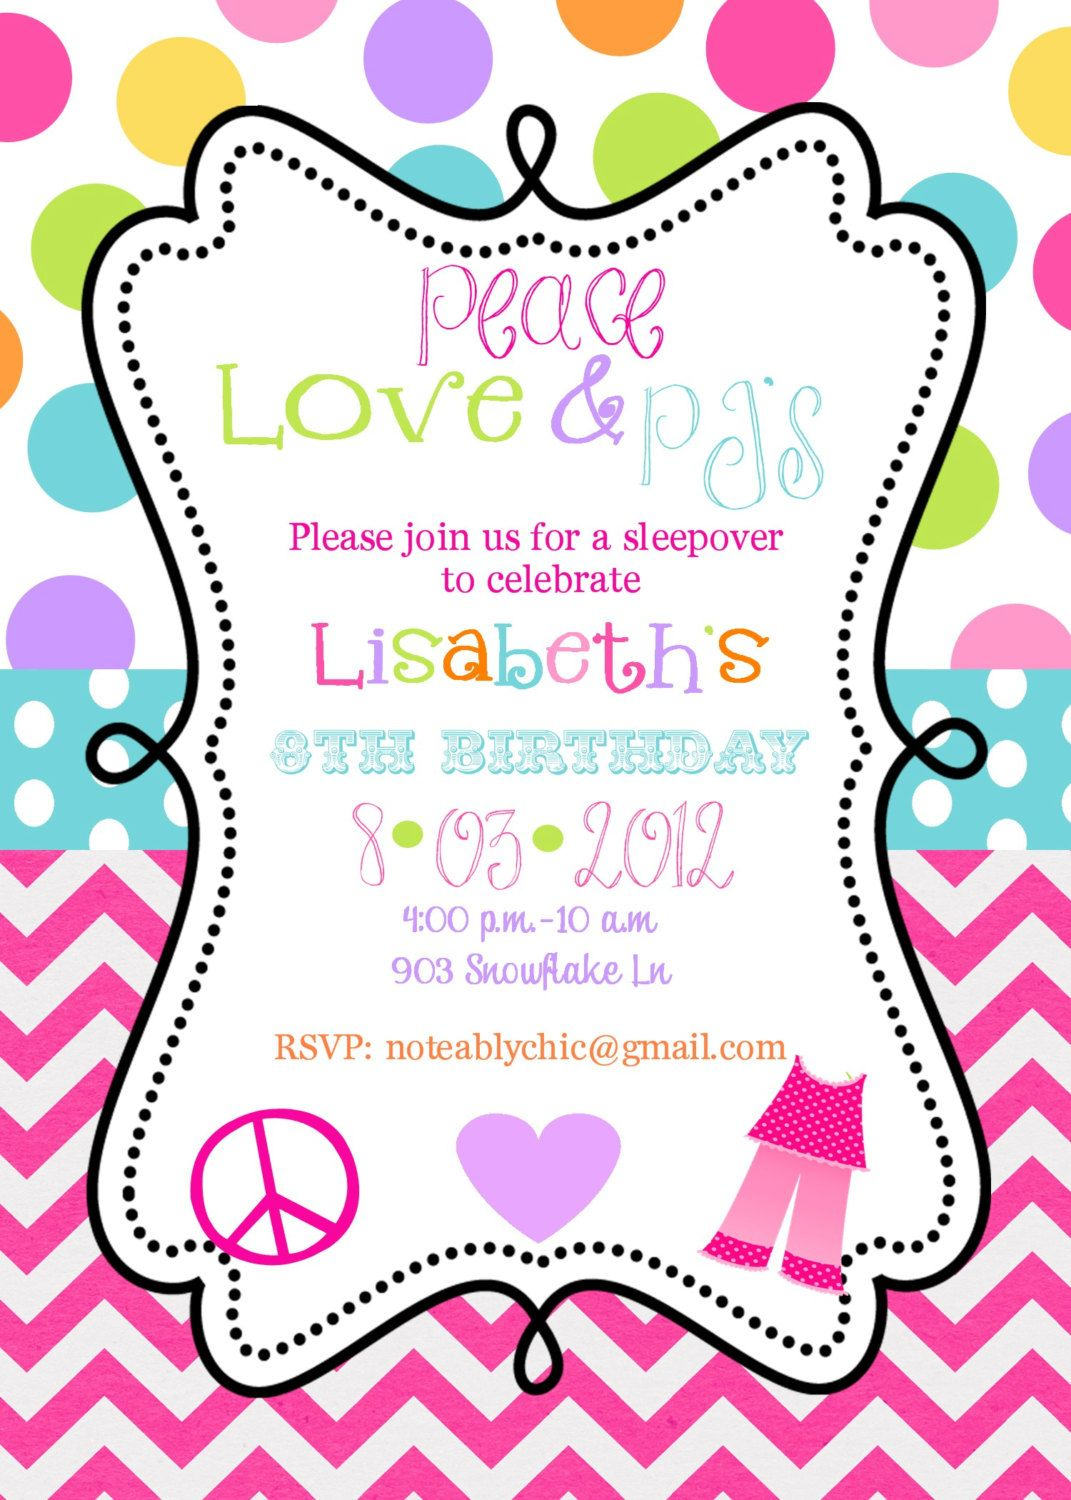 Free birthday invitations templates my birthday pinterest free birthday invitations templates stopboris Choice Image